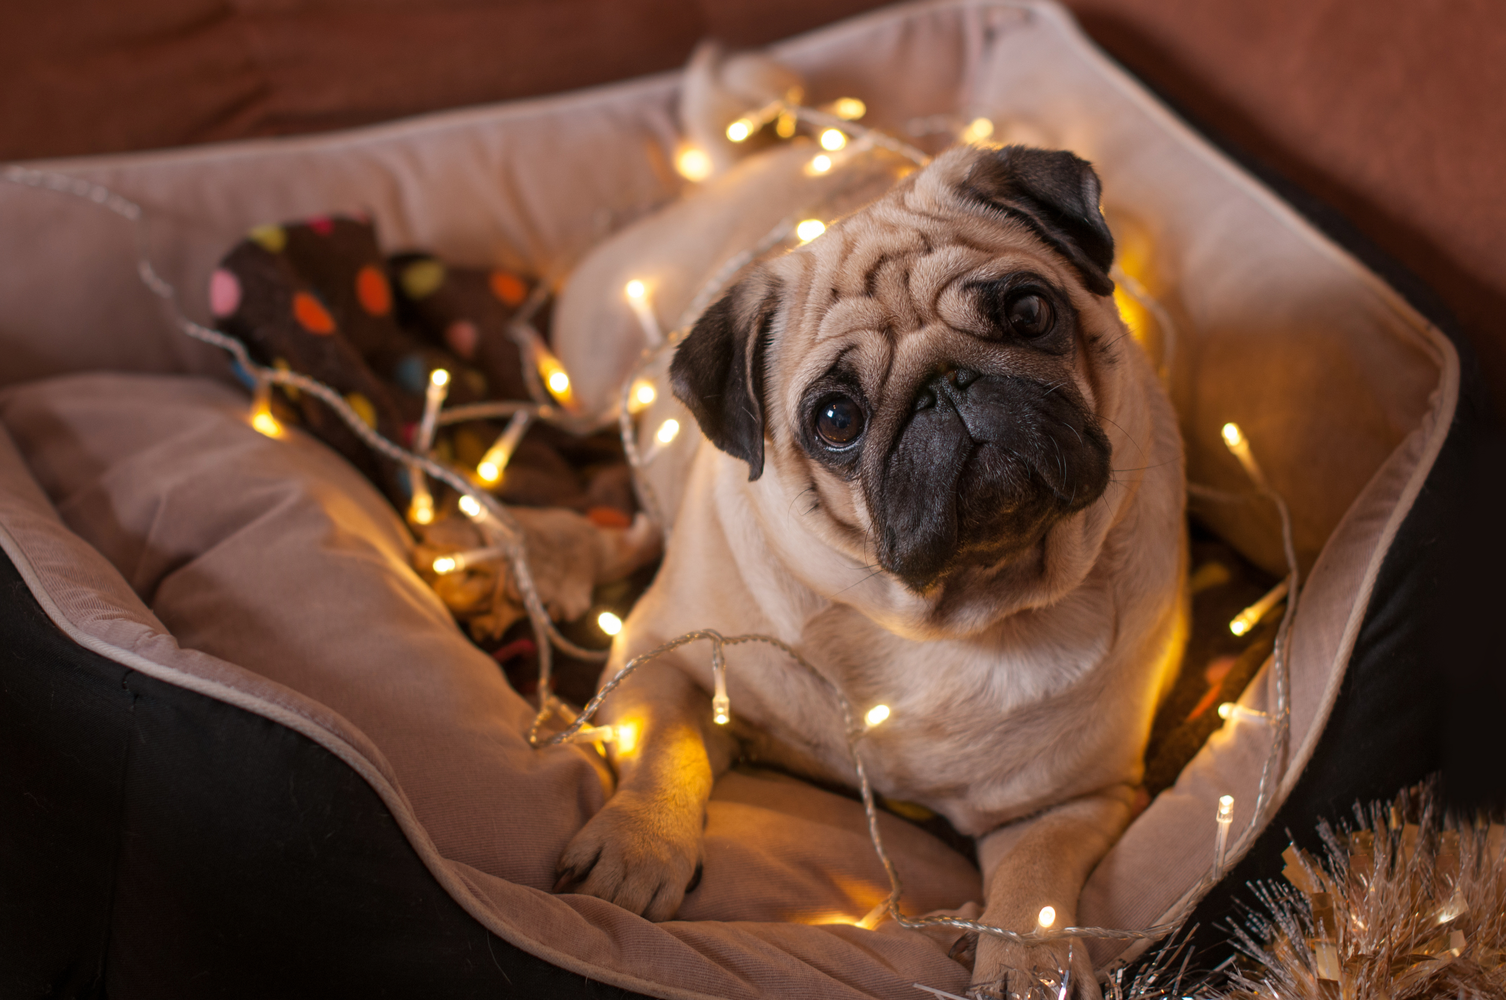 How to Protect Your Pet from Holiday Hazards